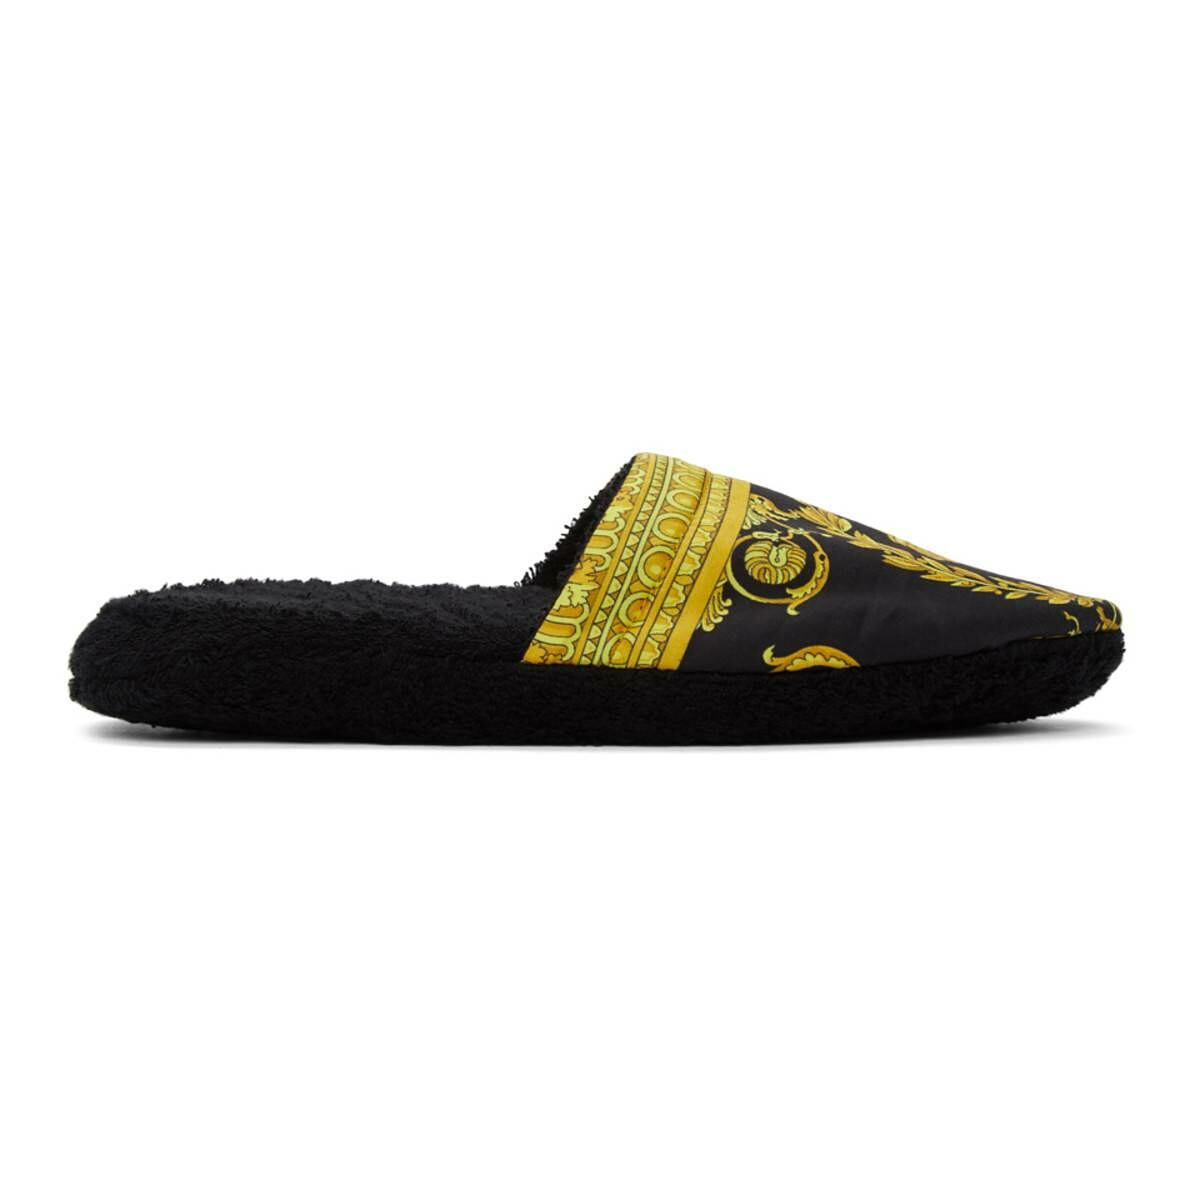 Versace Black Baroque Slippers Ssense USA MEN Men SHOES Mens LOAFERS